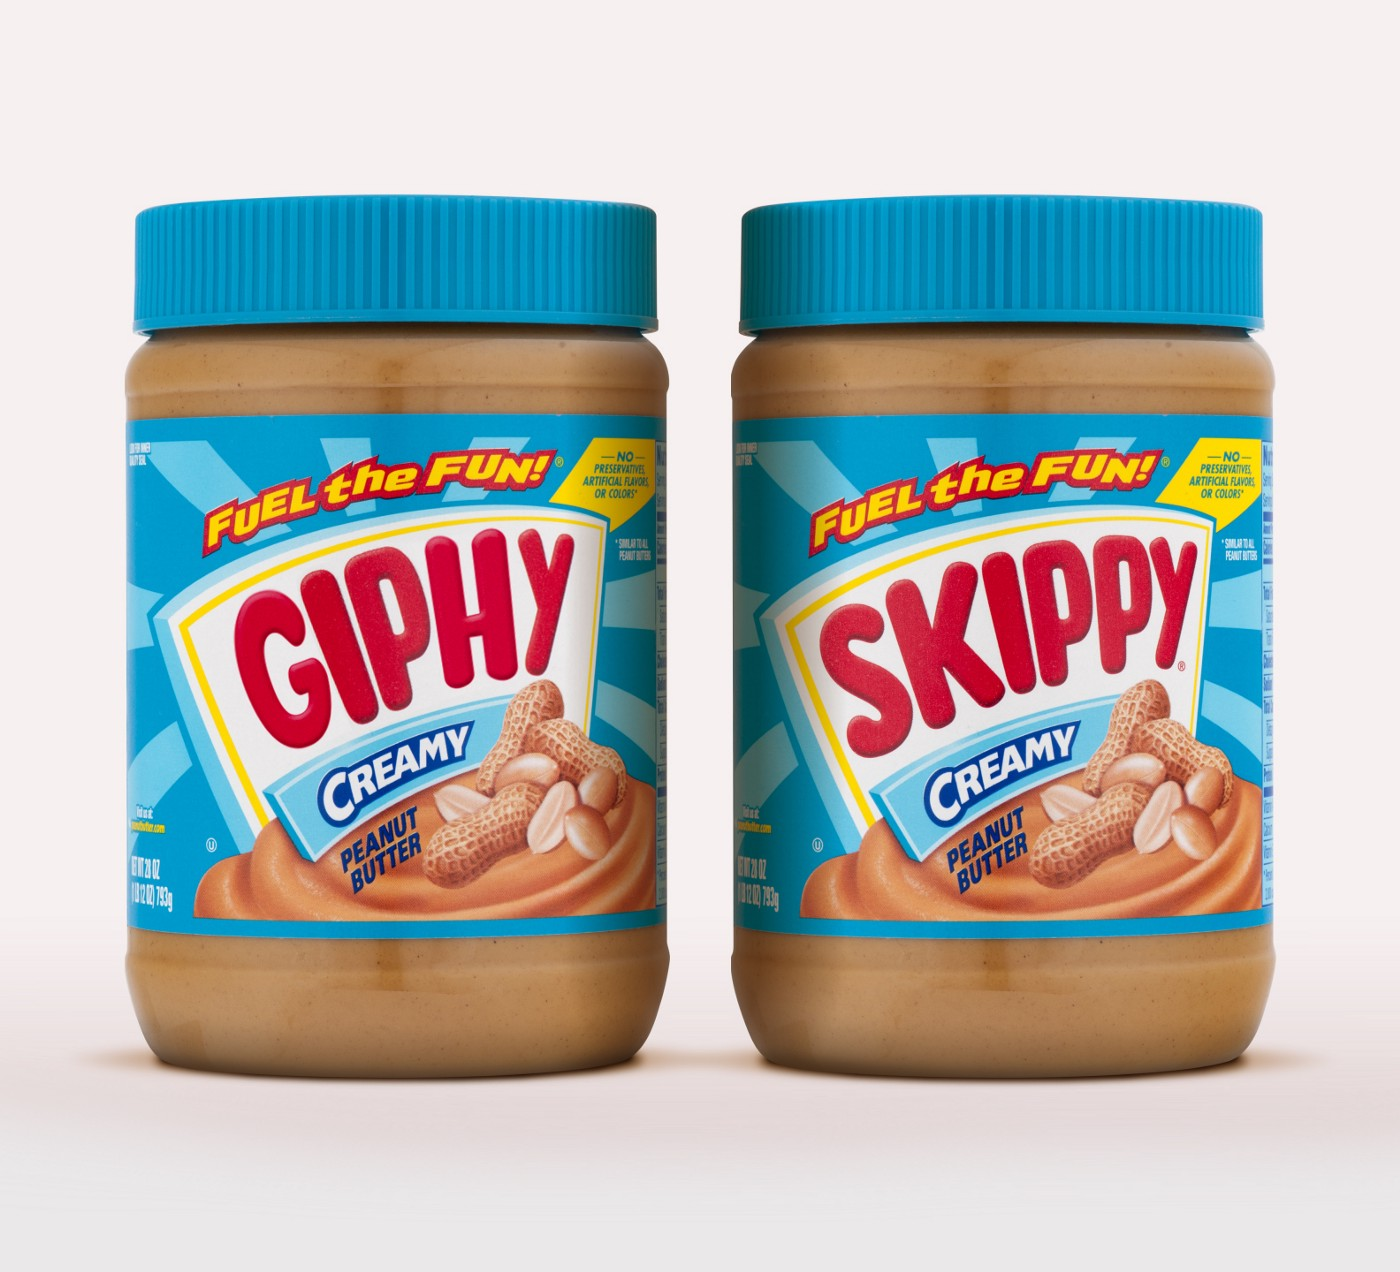 How can peanut butter influence your brand personality?